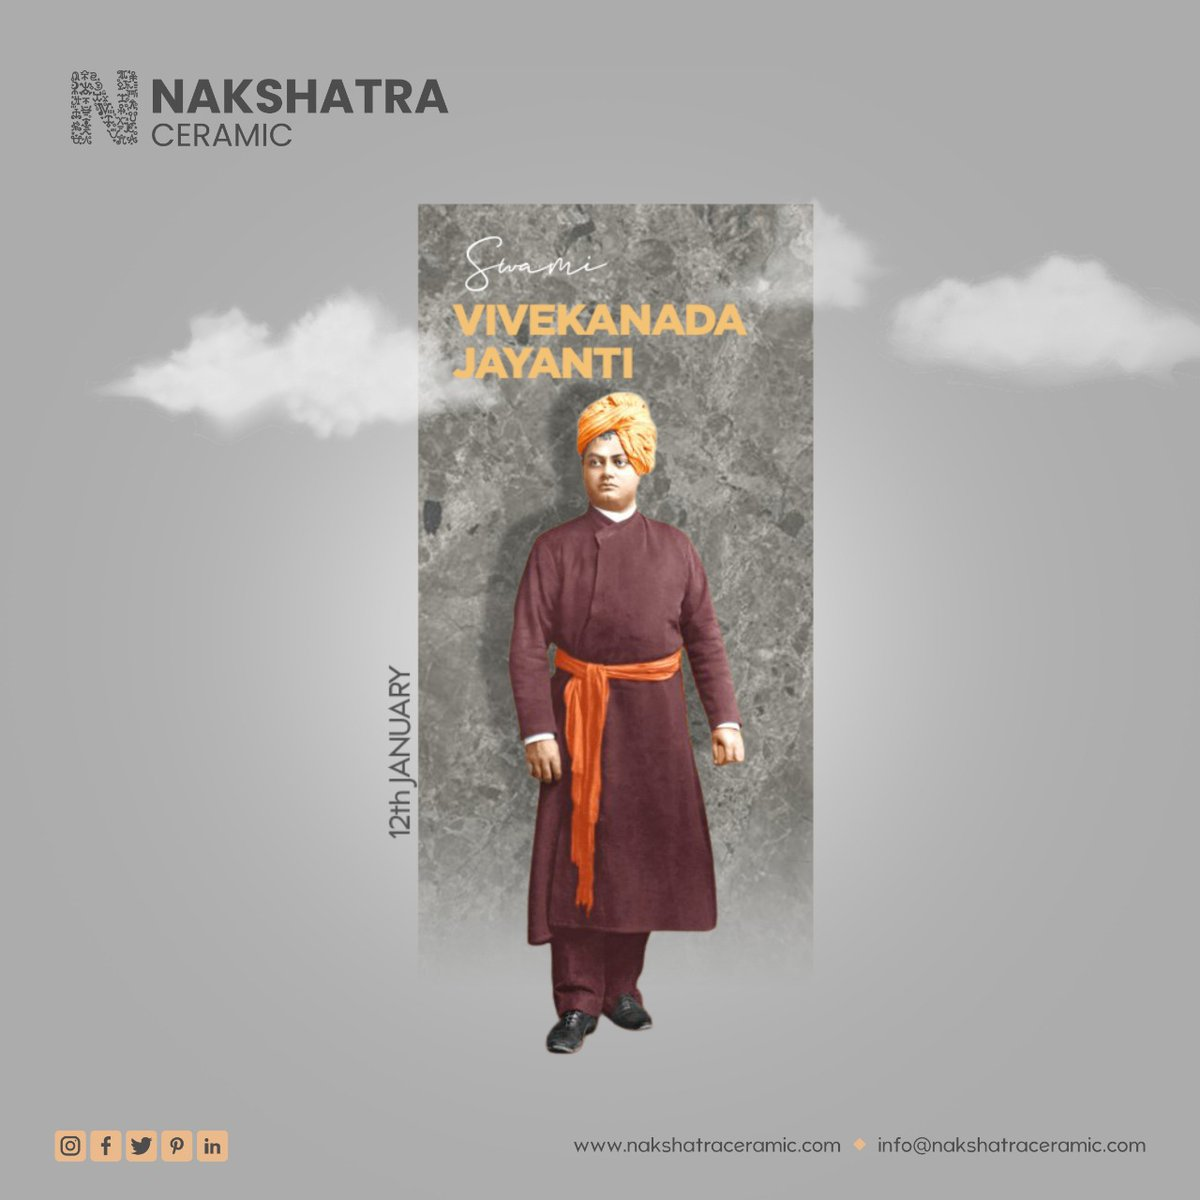 NATIONAL YOUTH DAY  #nationalyouthday #swamivivekananda #vivekananda #swamivivekanandaji #swamivivekanand #india #swamiji #hinduism #yoga #hindu #guru #youth #vivekanandaquotes #vivekanand #ramakrishnaparamahamsa #ramakrishnamission  #harekrishna #ramanamaharshi  #ramanashram